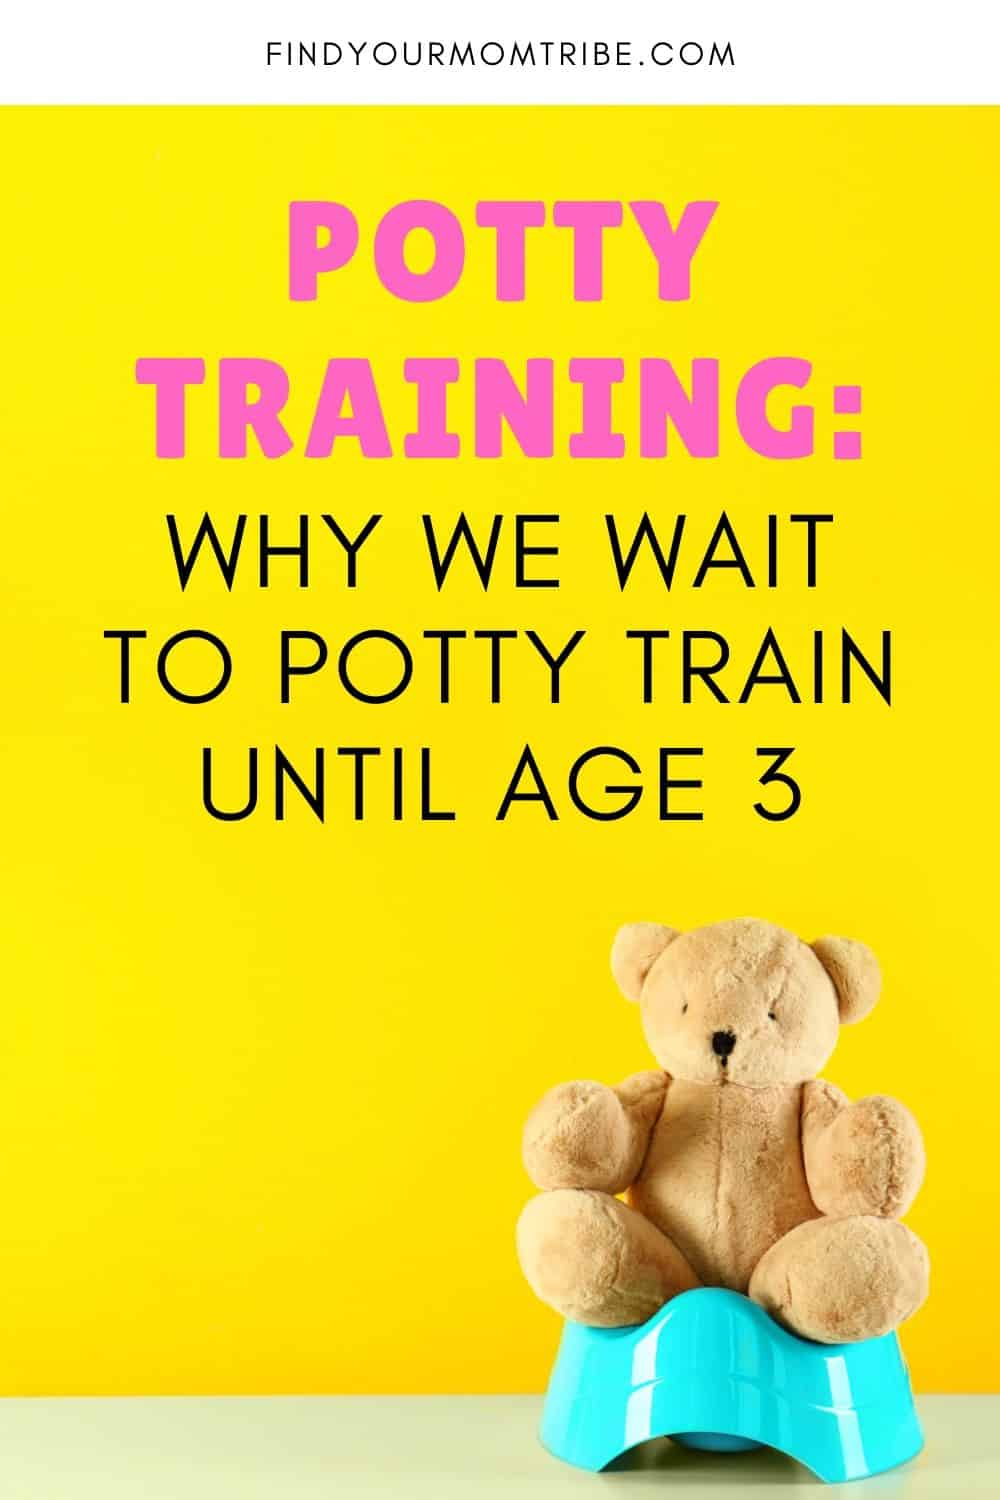 Why We Wait to Potty Train Until Age 3